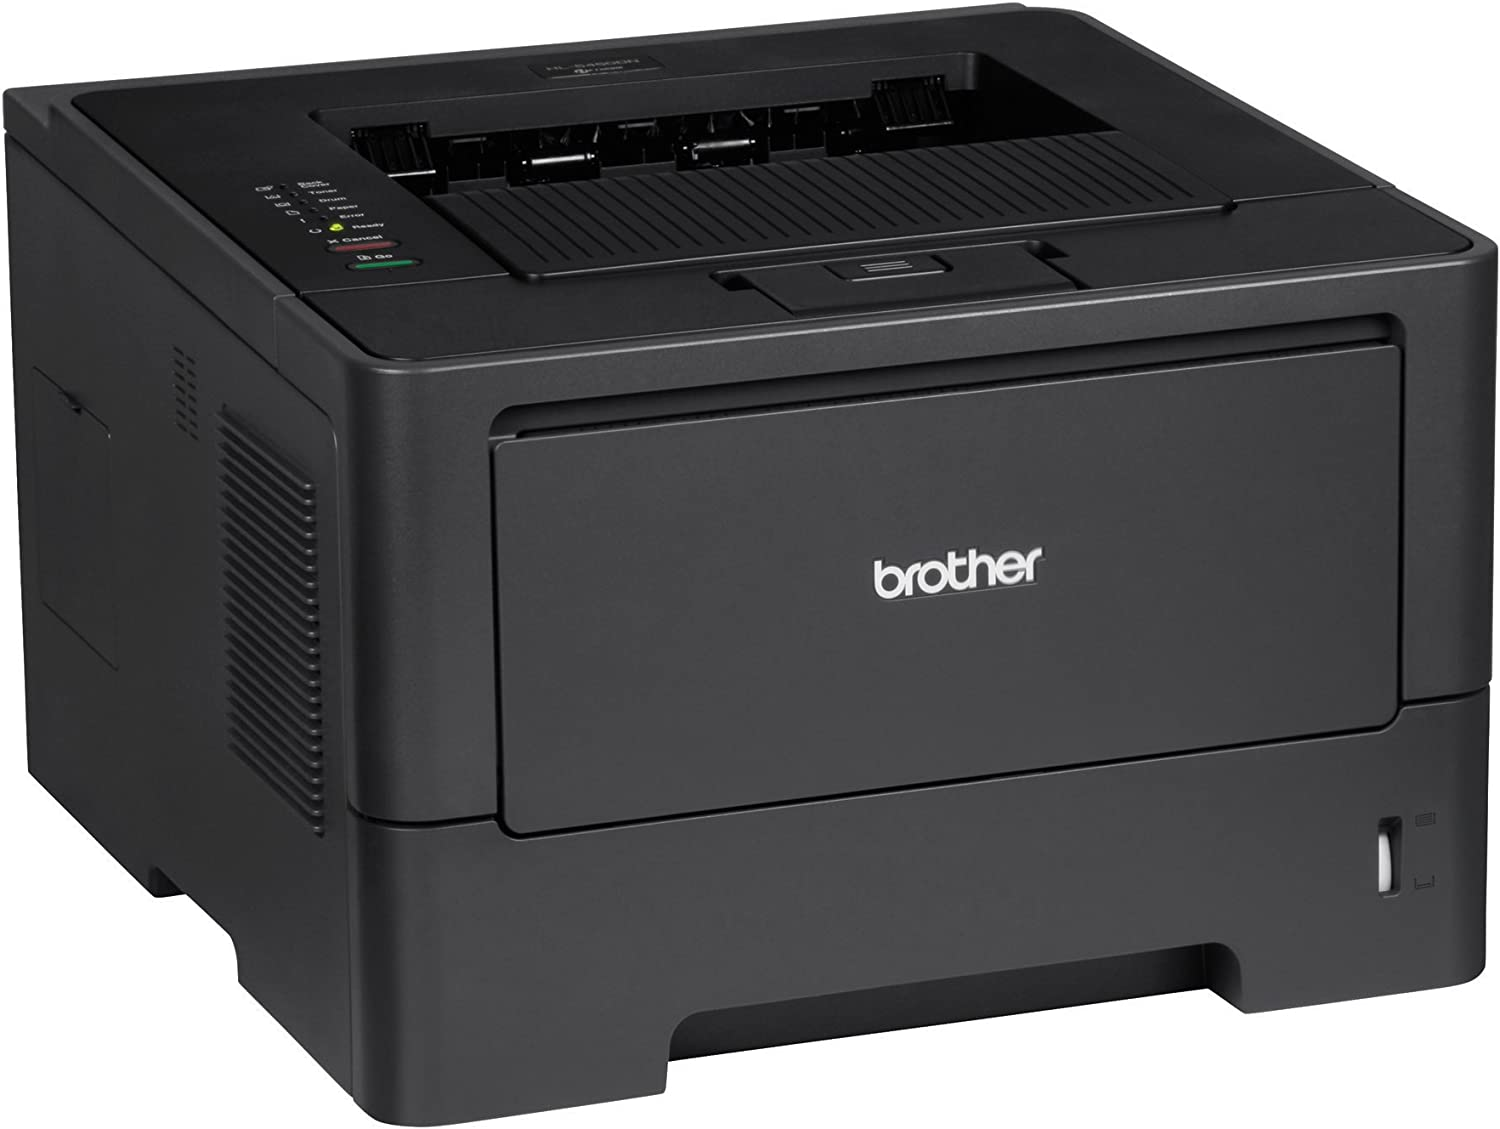 Brother HL5450DN High-Speed Laser Printer With Networking and Duplex, Amazon Dash Replenishment Ready